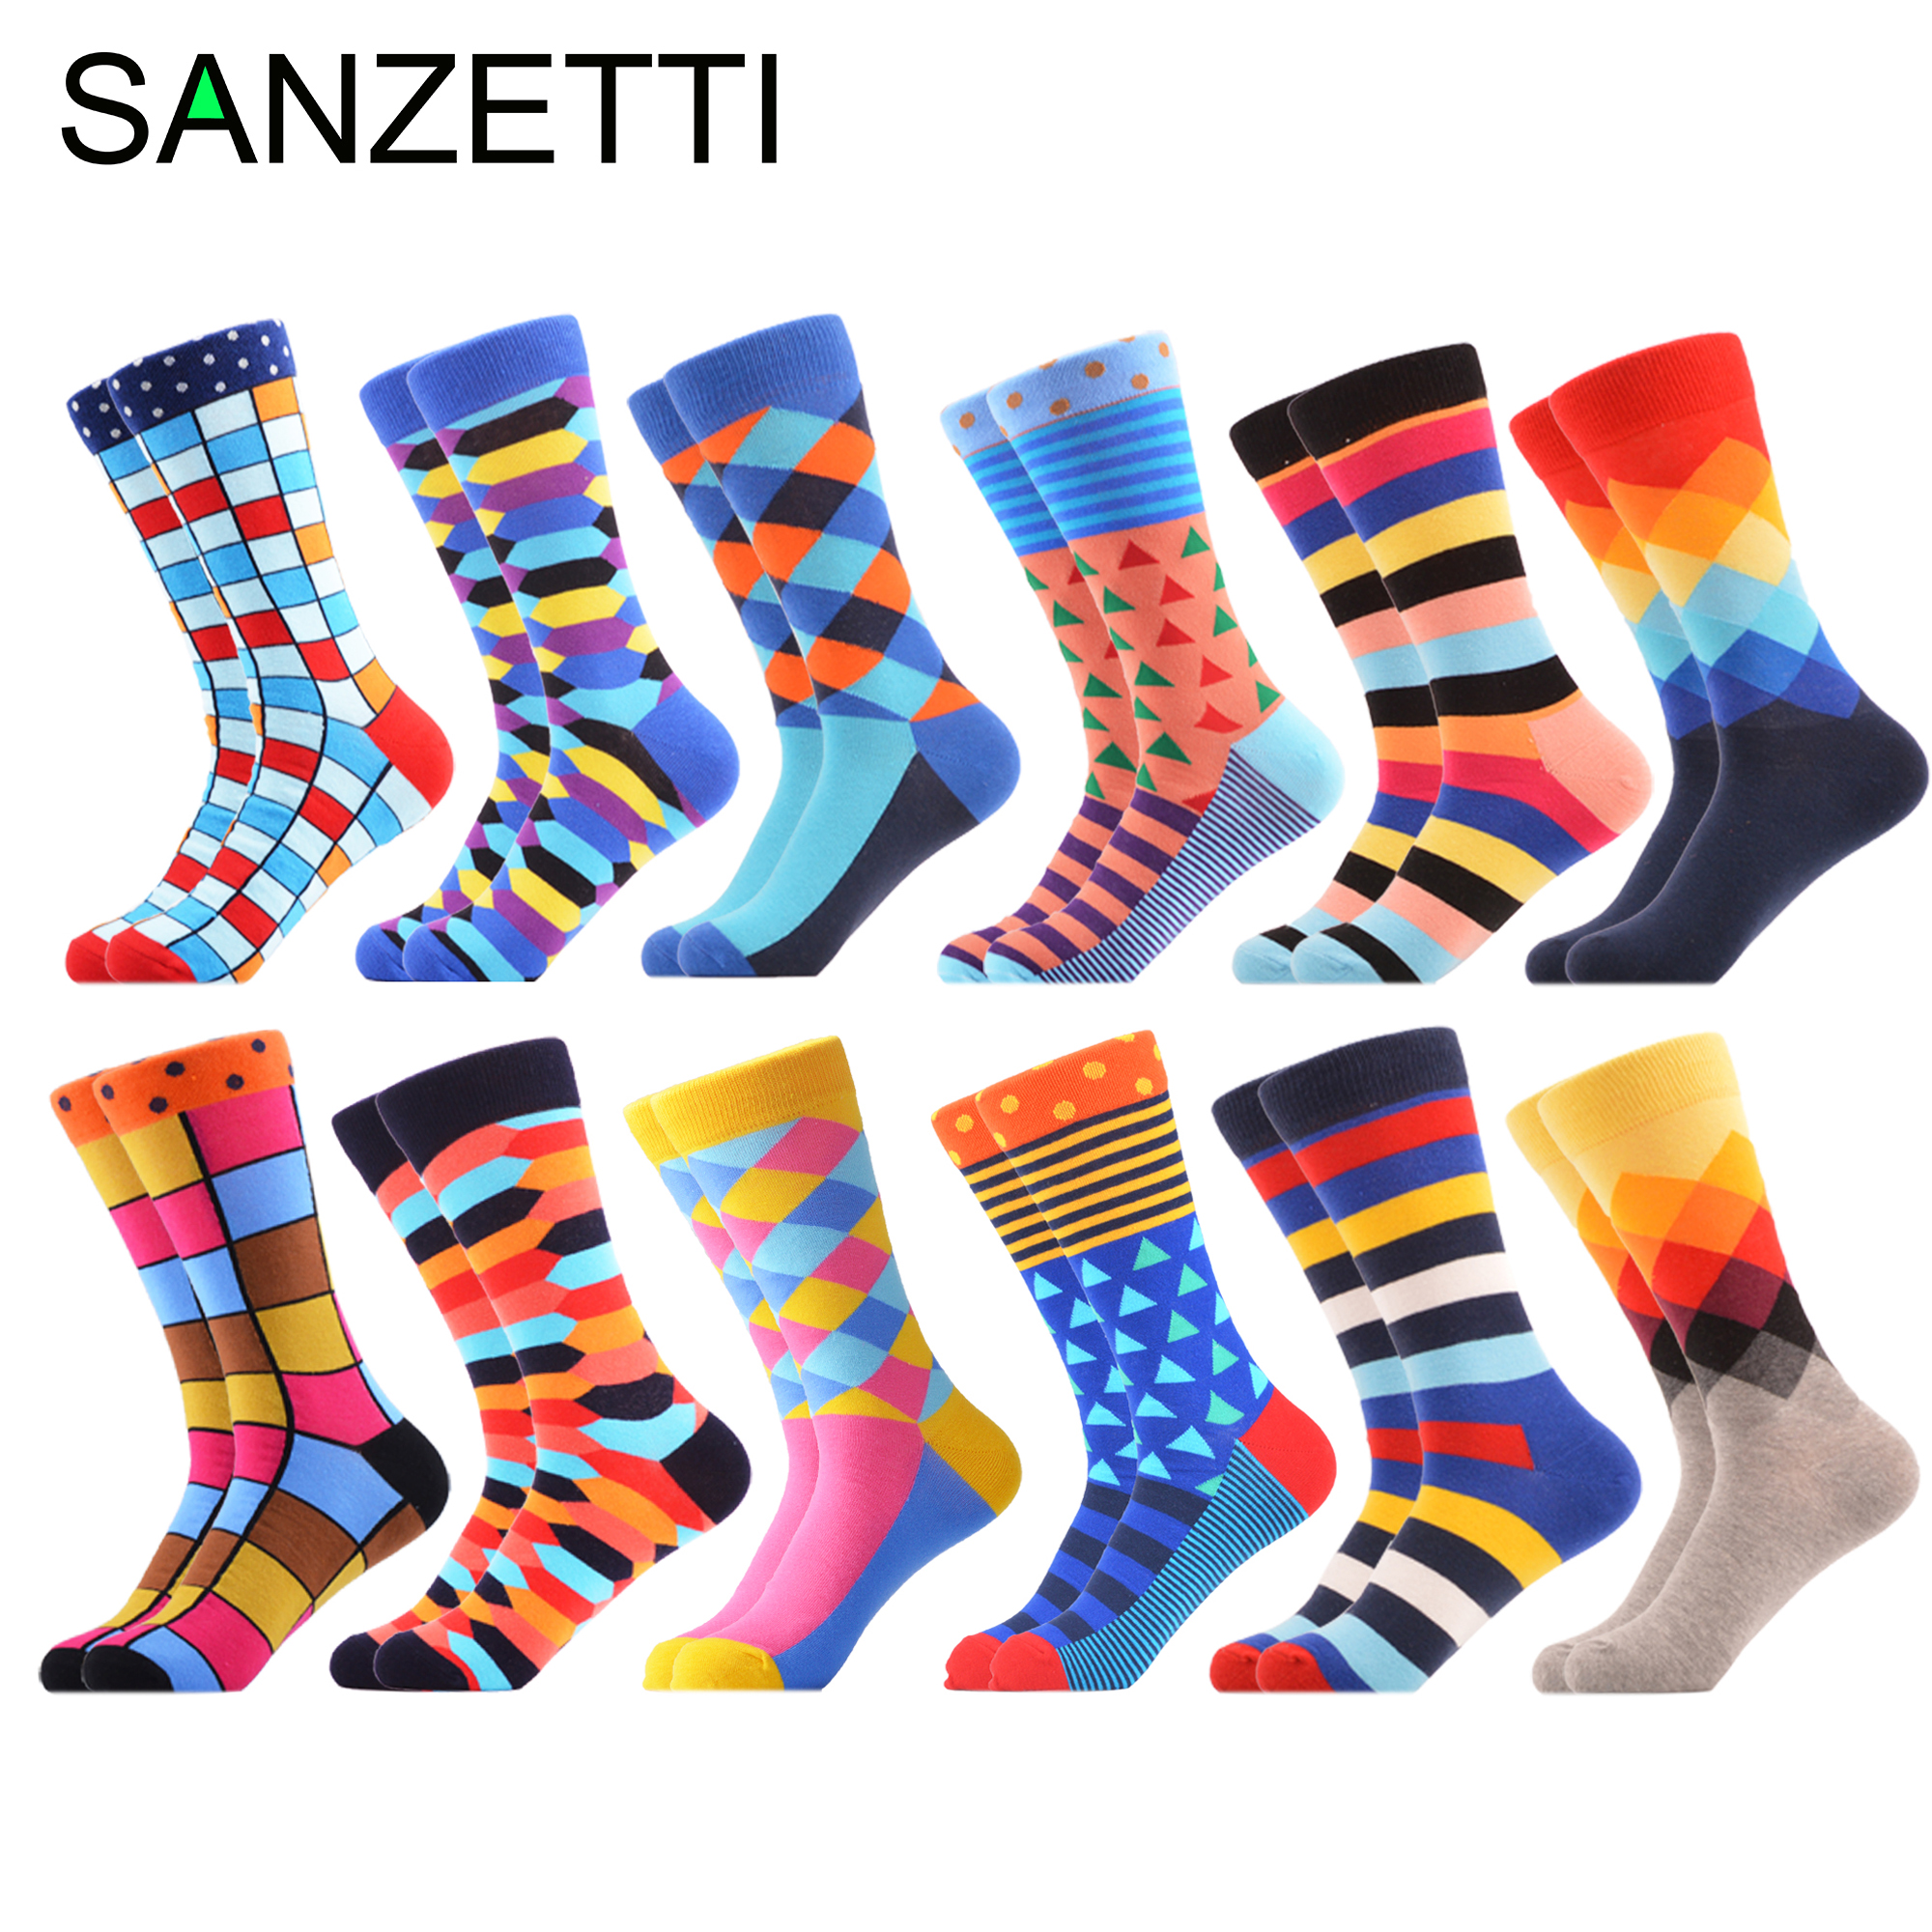 SANZETTI 12 Pairs/Lot 2019 Men Combed Cotton Casual Tube Socks Colorful Dress Striped Plaid Comfortable Party Gift Classic Socks